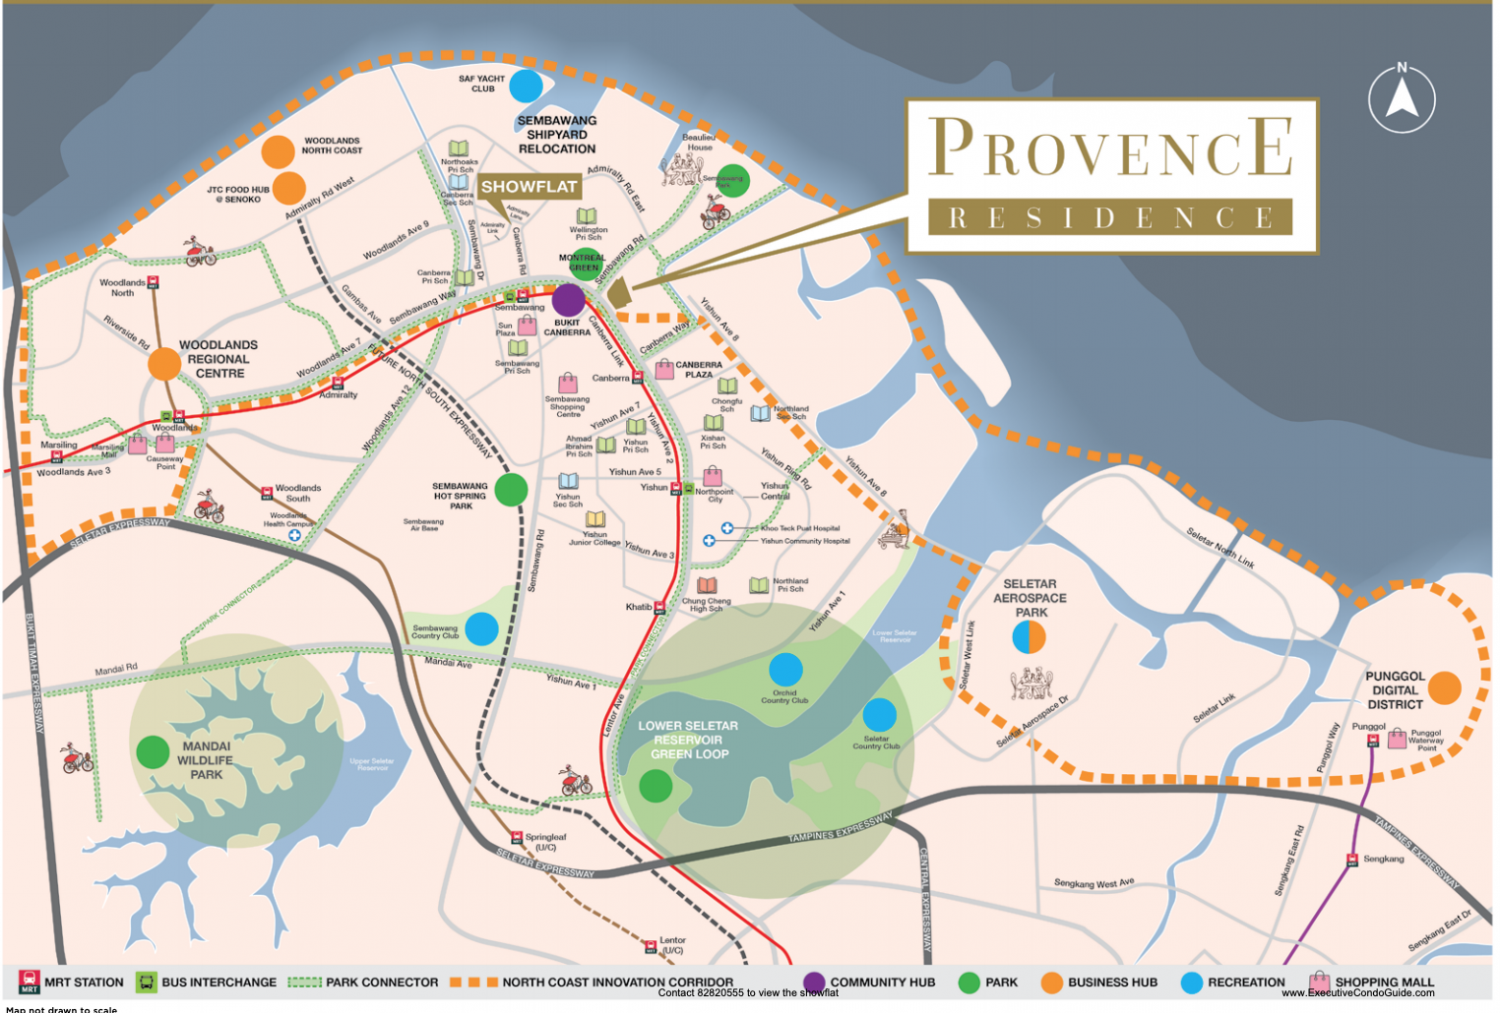 Provence Residence Map